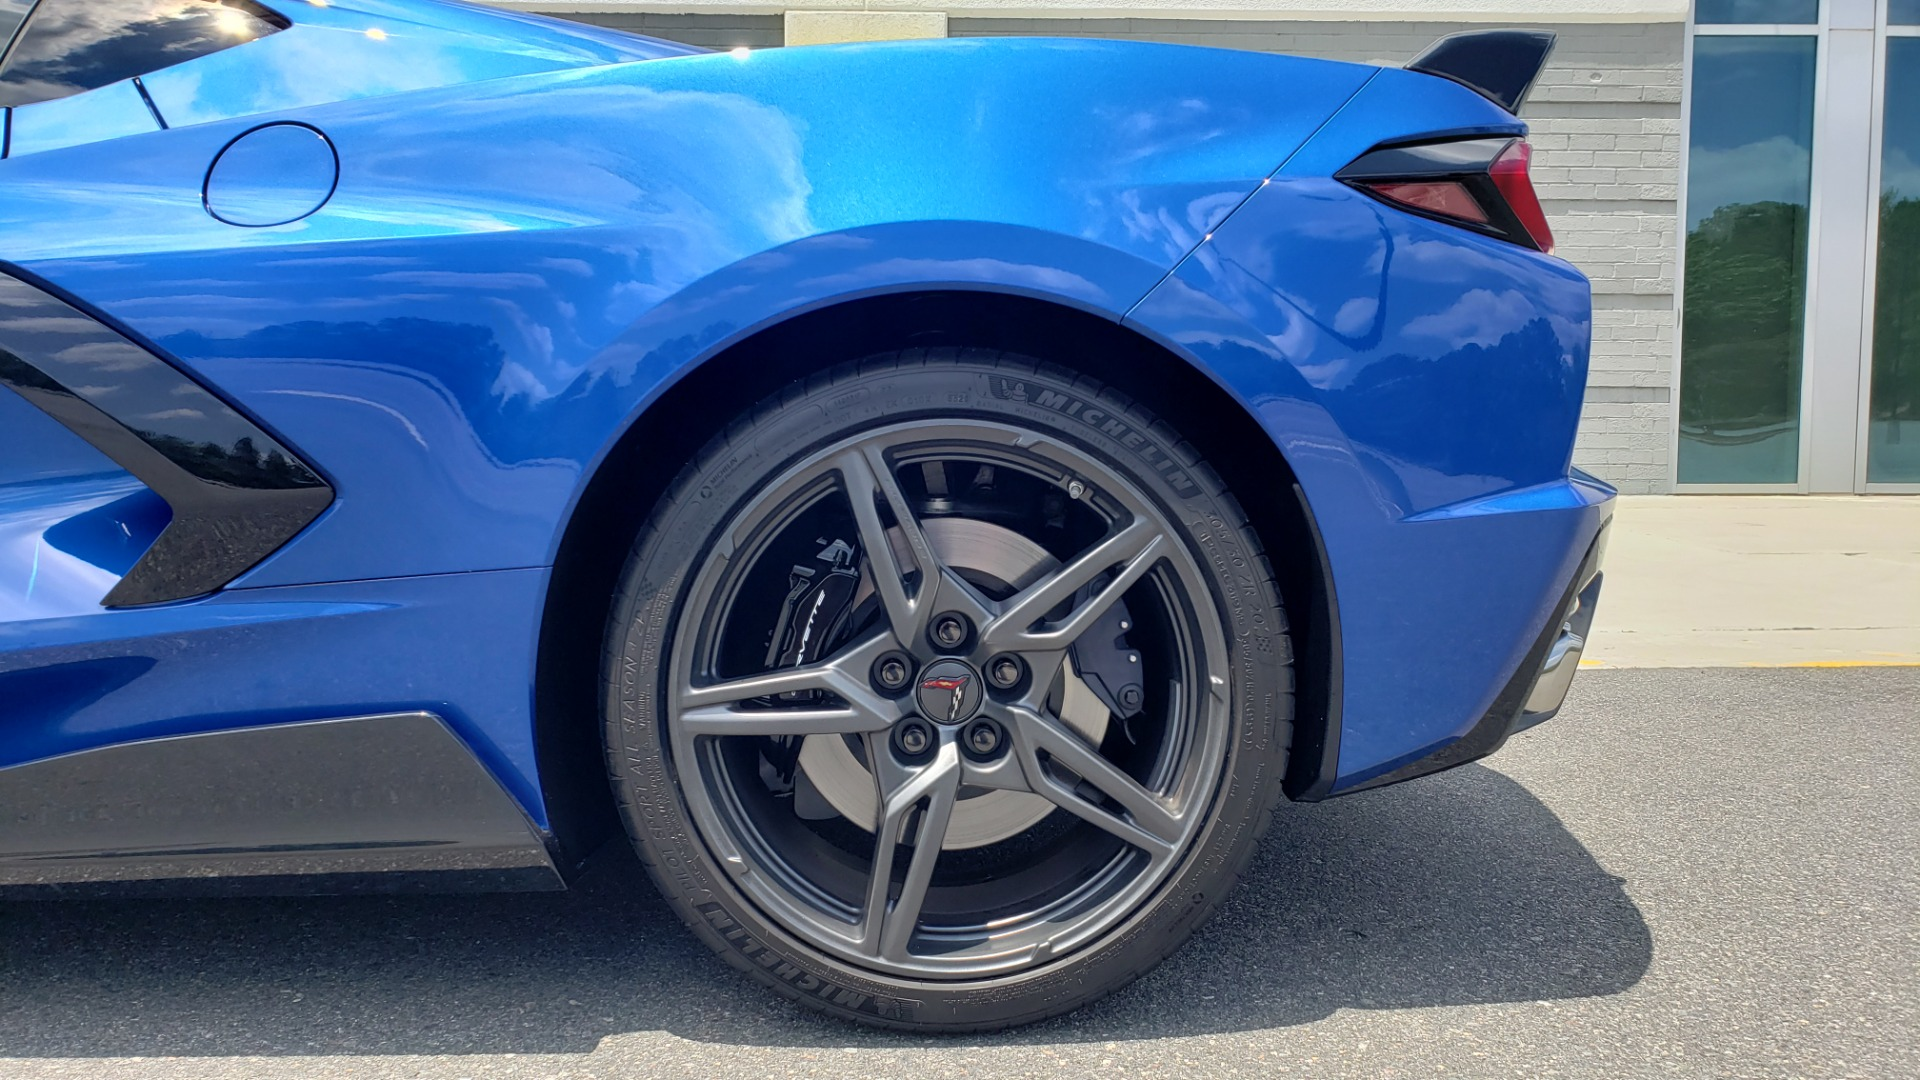 Used 2020 Chevrolet CORVETTE C8 STINGRAY COUPE 2LT / PERF & Z51 PKG / NAV / BOSE / 8-SPD AUTO / REARVIEW for sale Sold at Formula Imports in Charlotte NC 28227 54